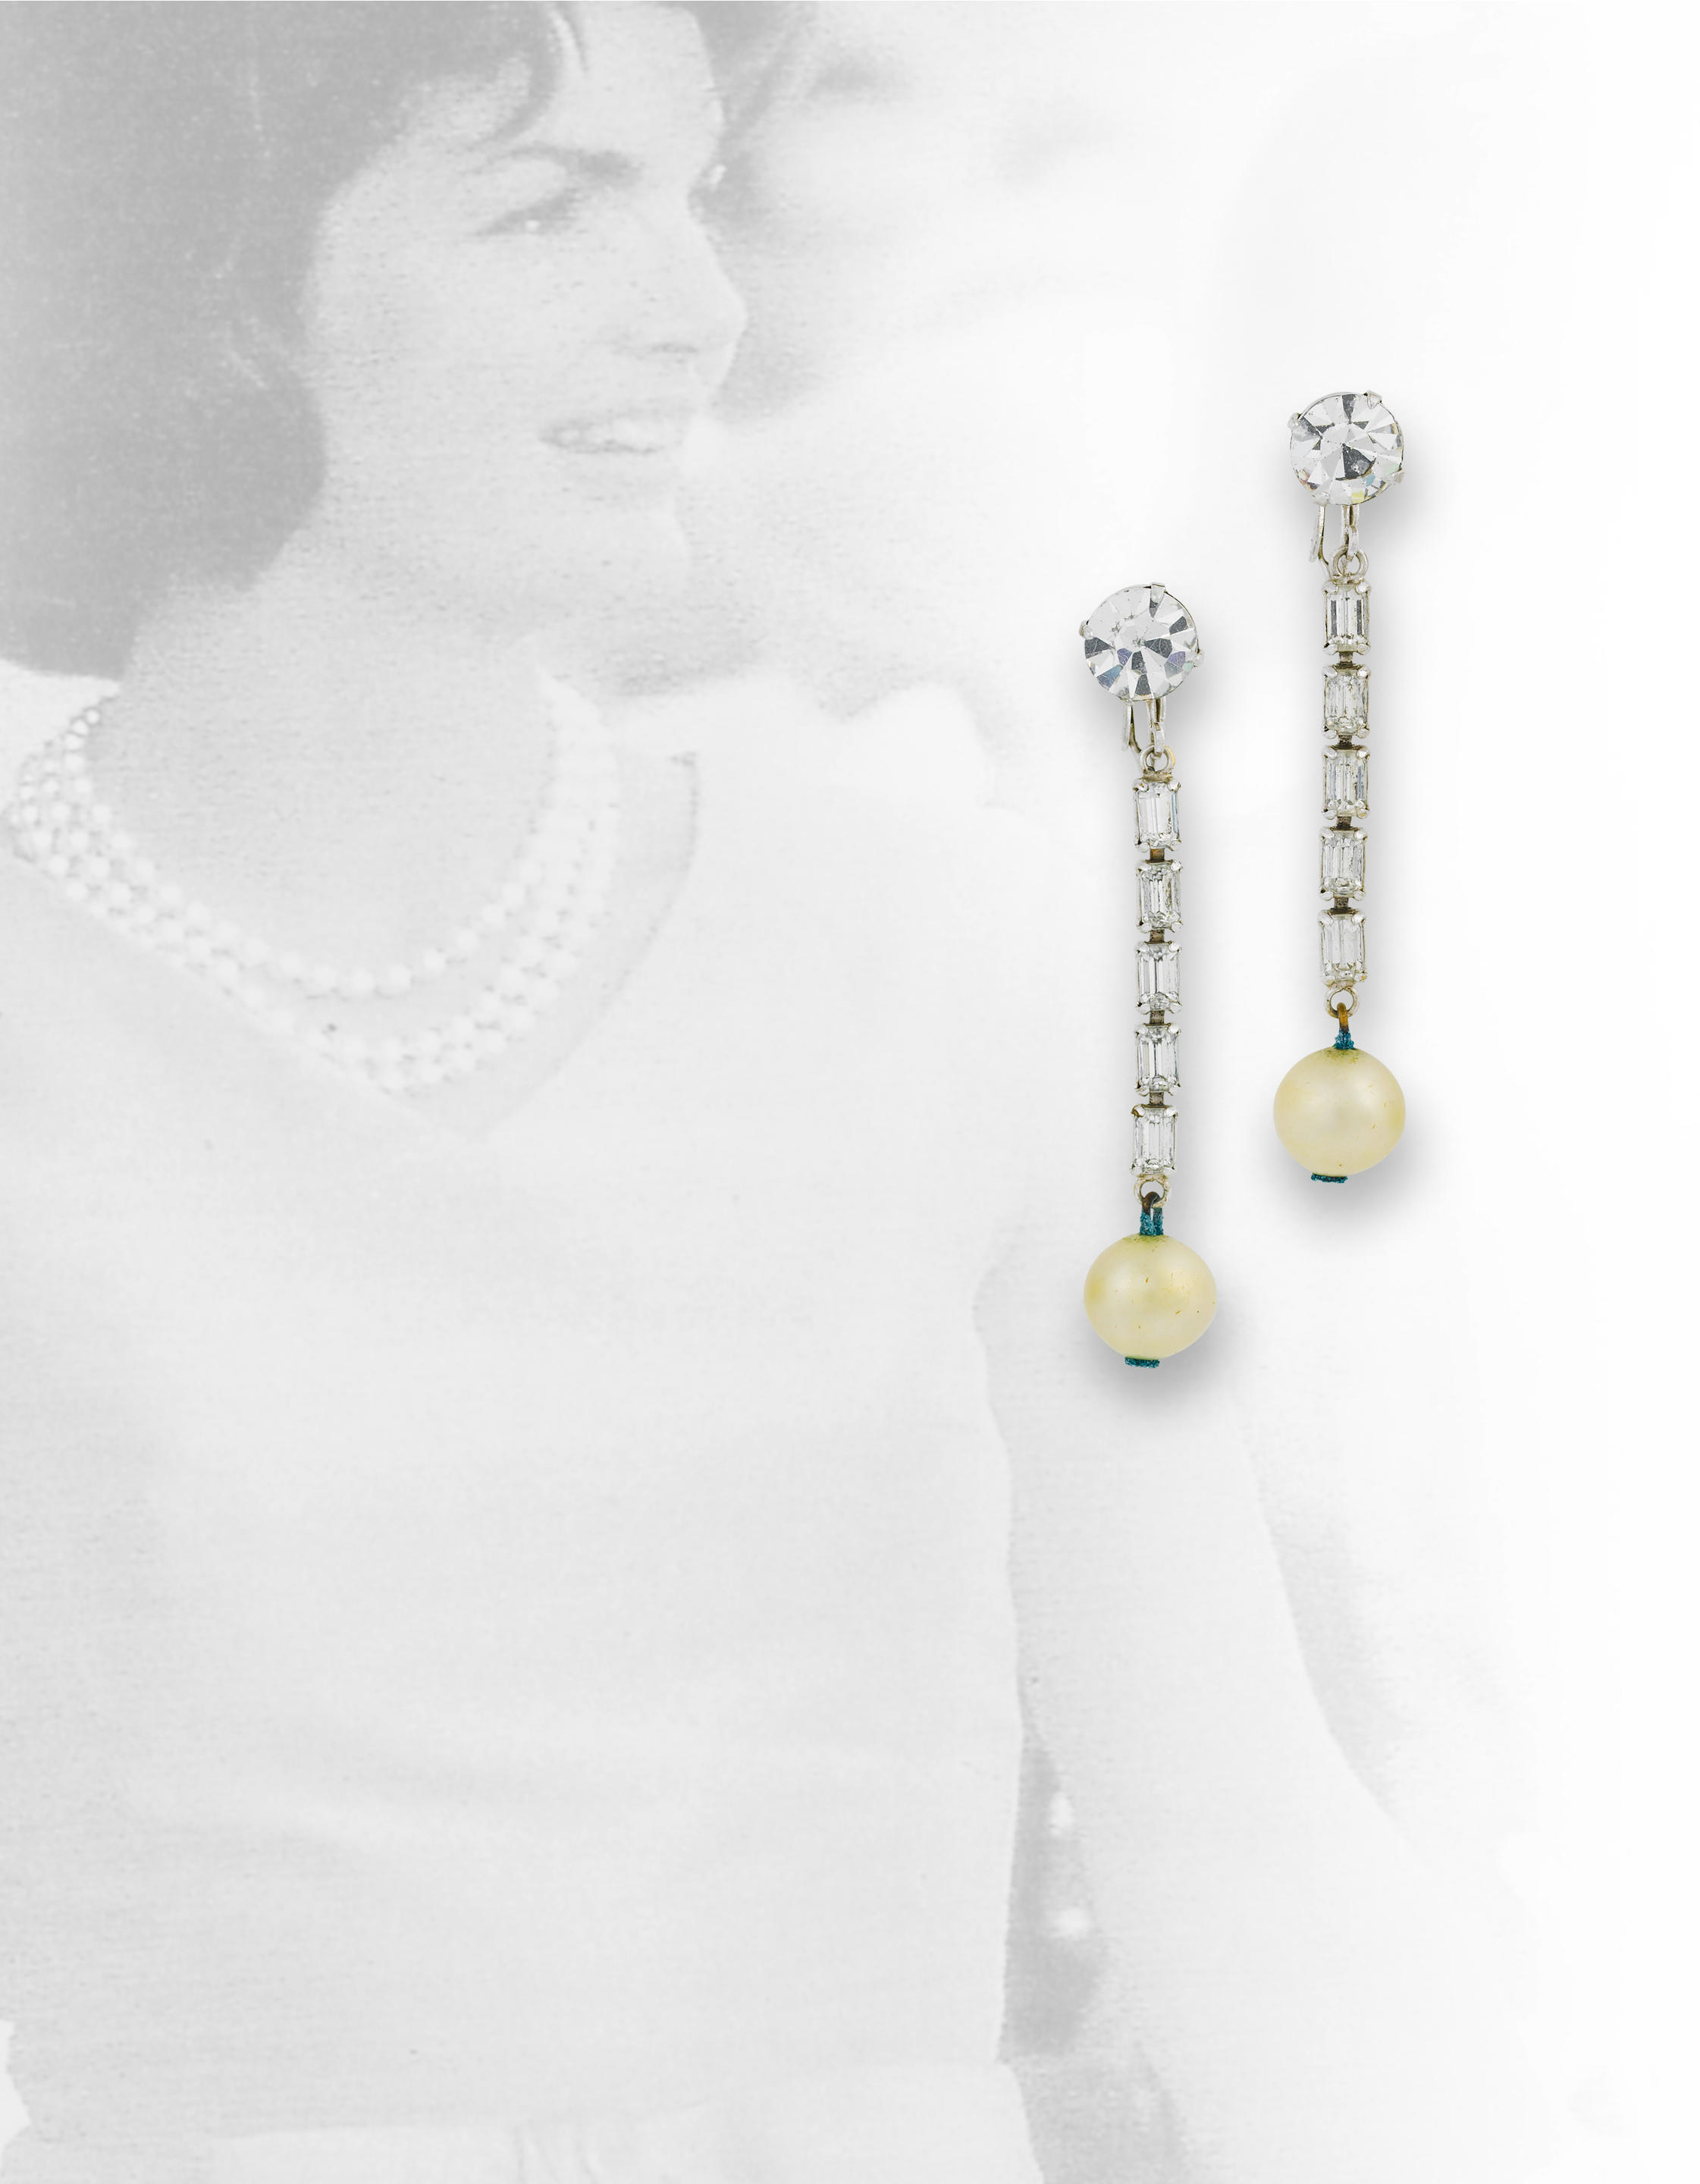 Jackie Kennedy's Faux Pearls Go on the Auction Block